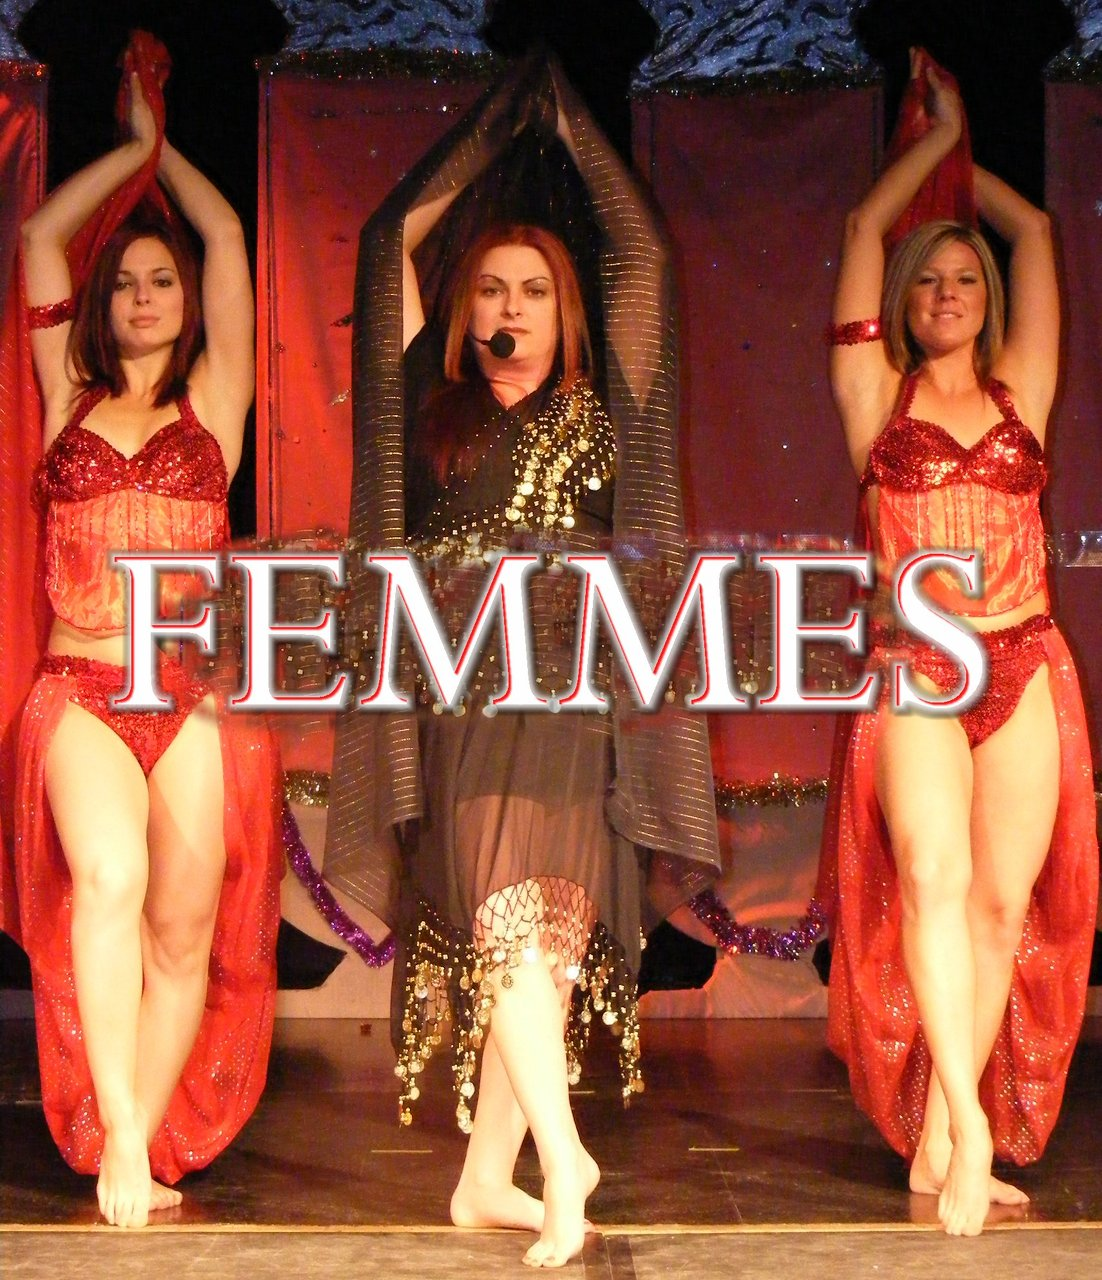 Production of Femmes